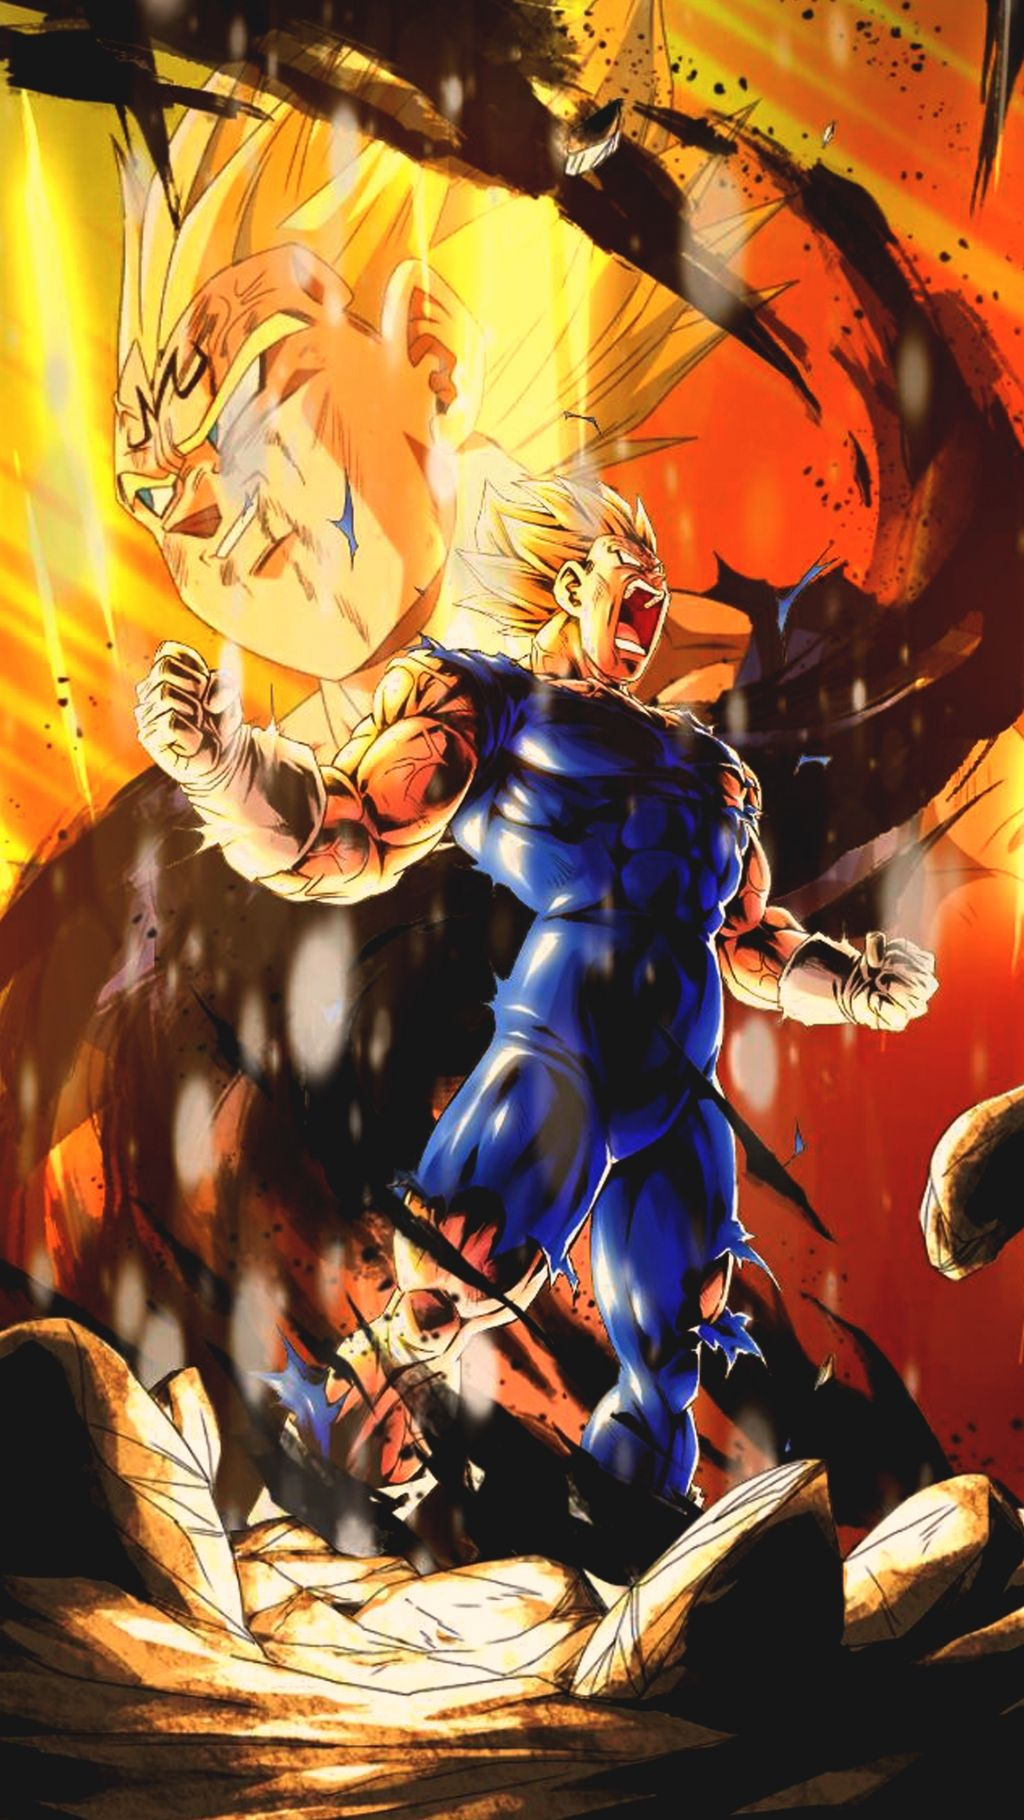 20 4k Wallpapers Of Dbz And Super For Phones In 2020 Anime Dragon Ball Super Dragon Ball Super Manga Anime Dragon Ball